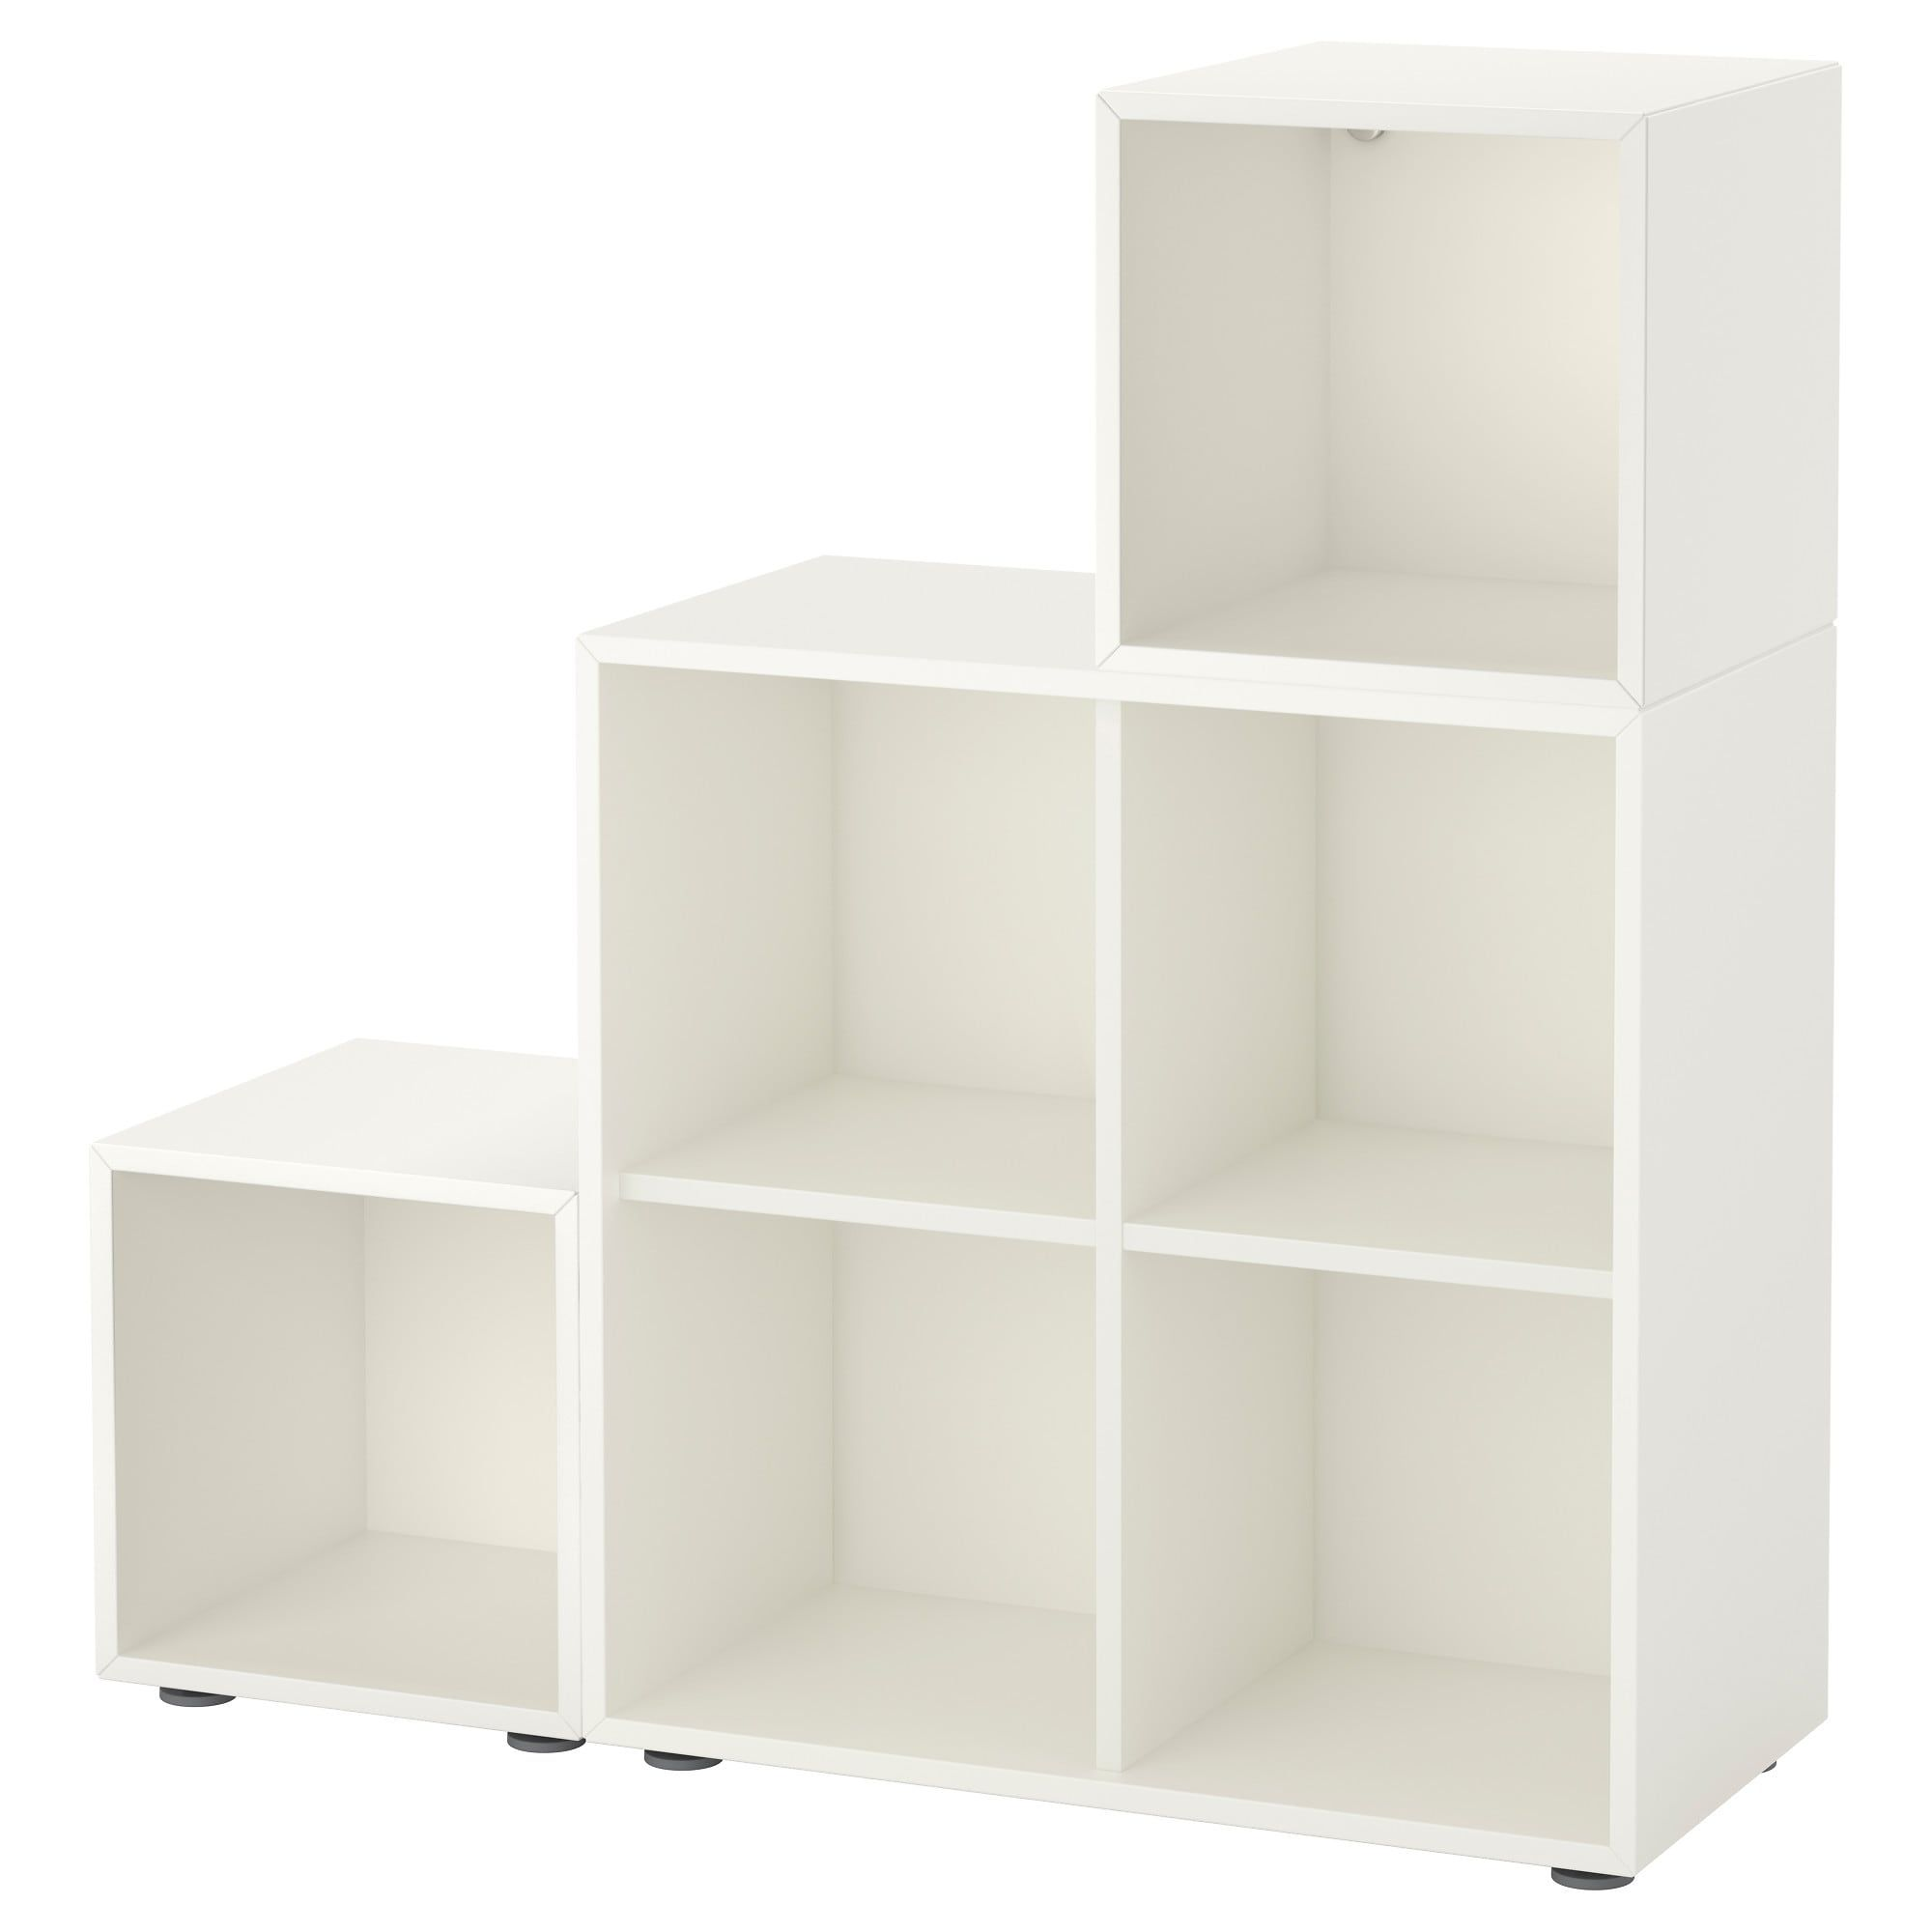 Eket Storage Combination With Feet White 41 3 8x13 3 4x42 1 8 Understairs Storage Ikea Eket Eket